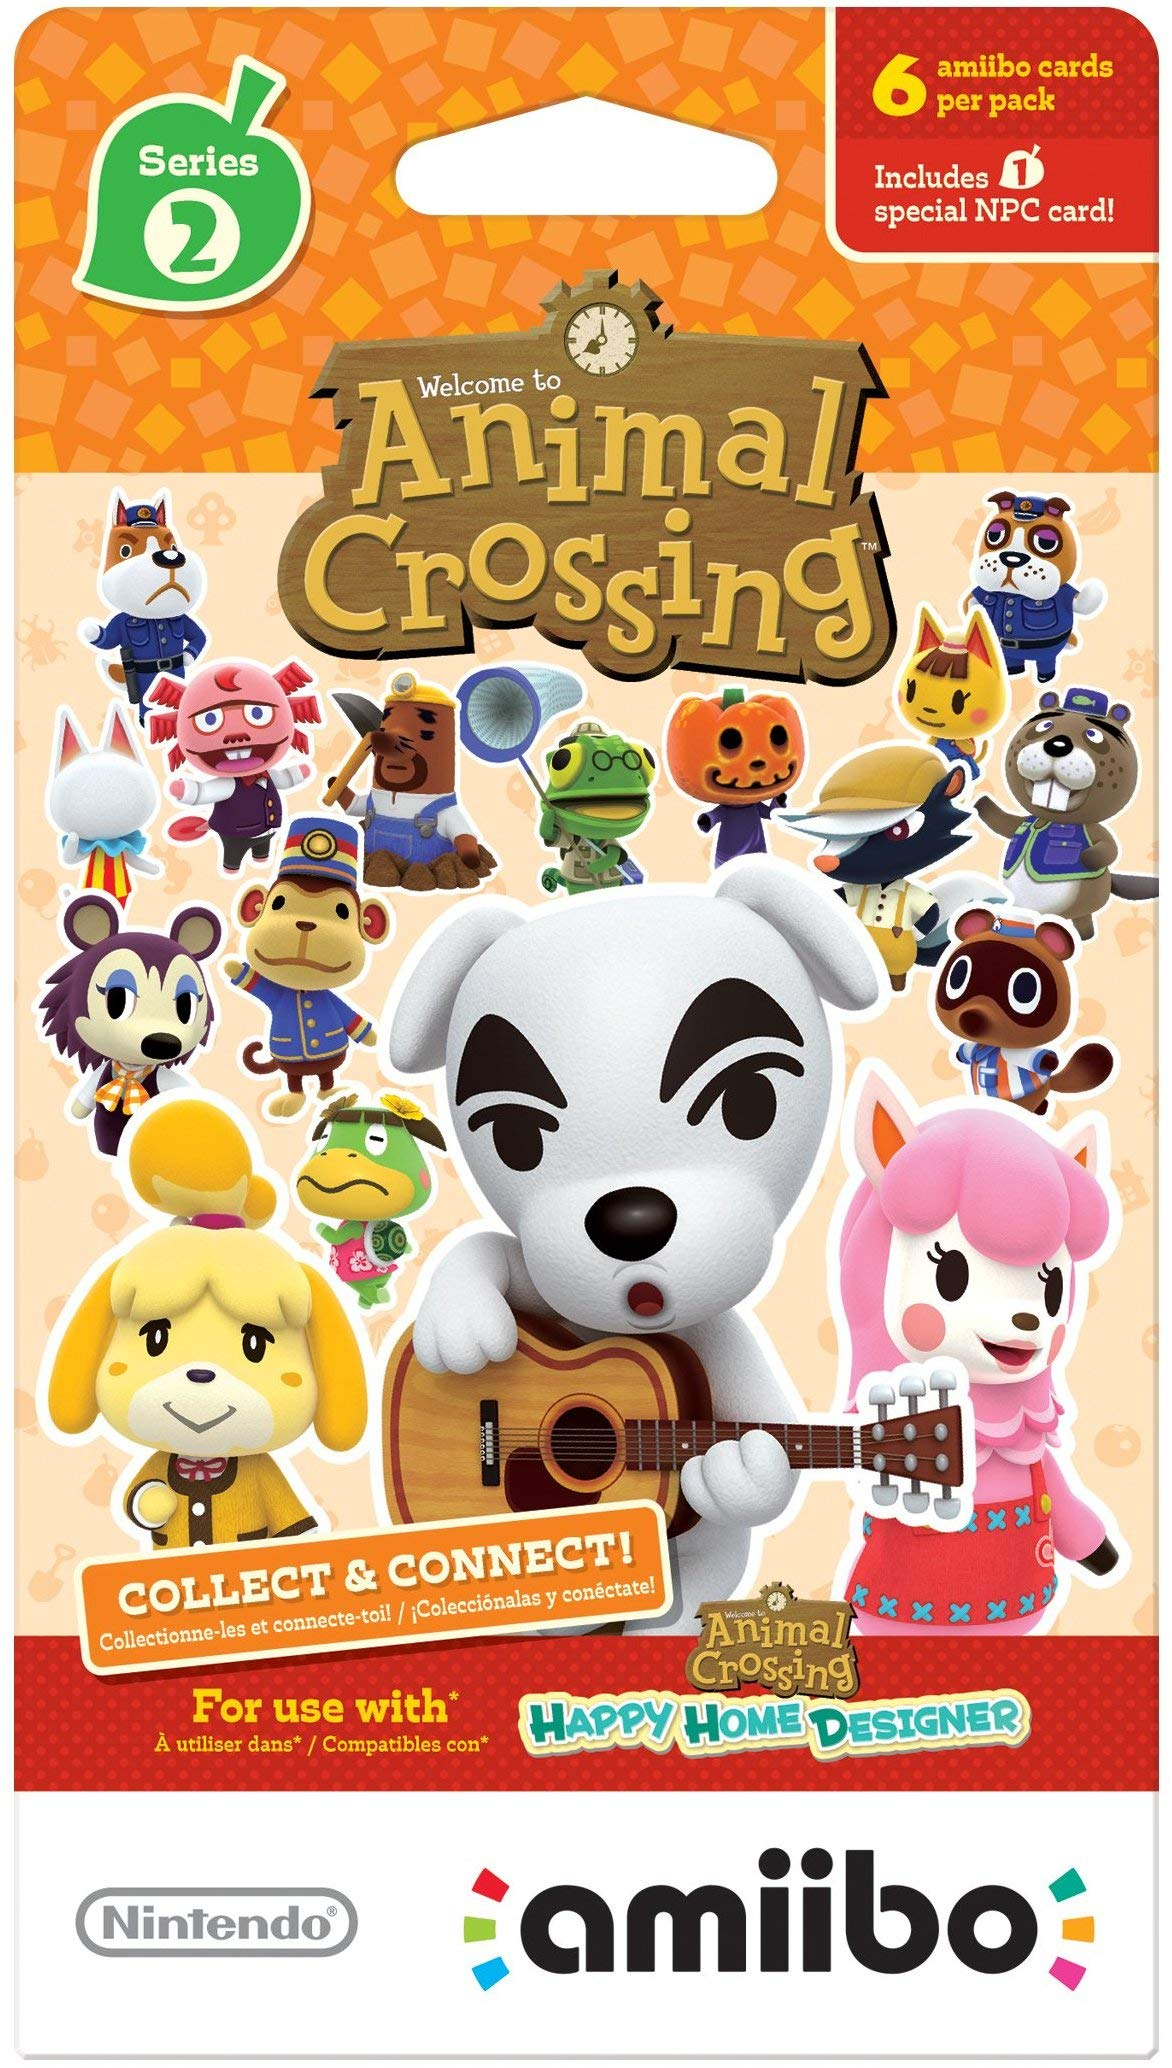 Nintendo Animal Crossing amiibo Cards Series 1, 2, 3, 4 for Nintendo Wii U and 3DS, 1-Pack (6 Cards/Pack) (Bundle) Includes 24 Cards Total by Nintendo (Image #3)